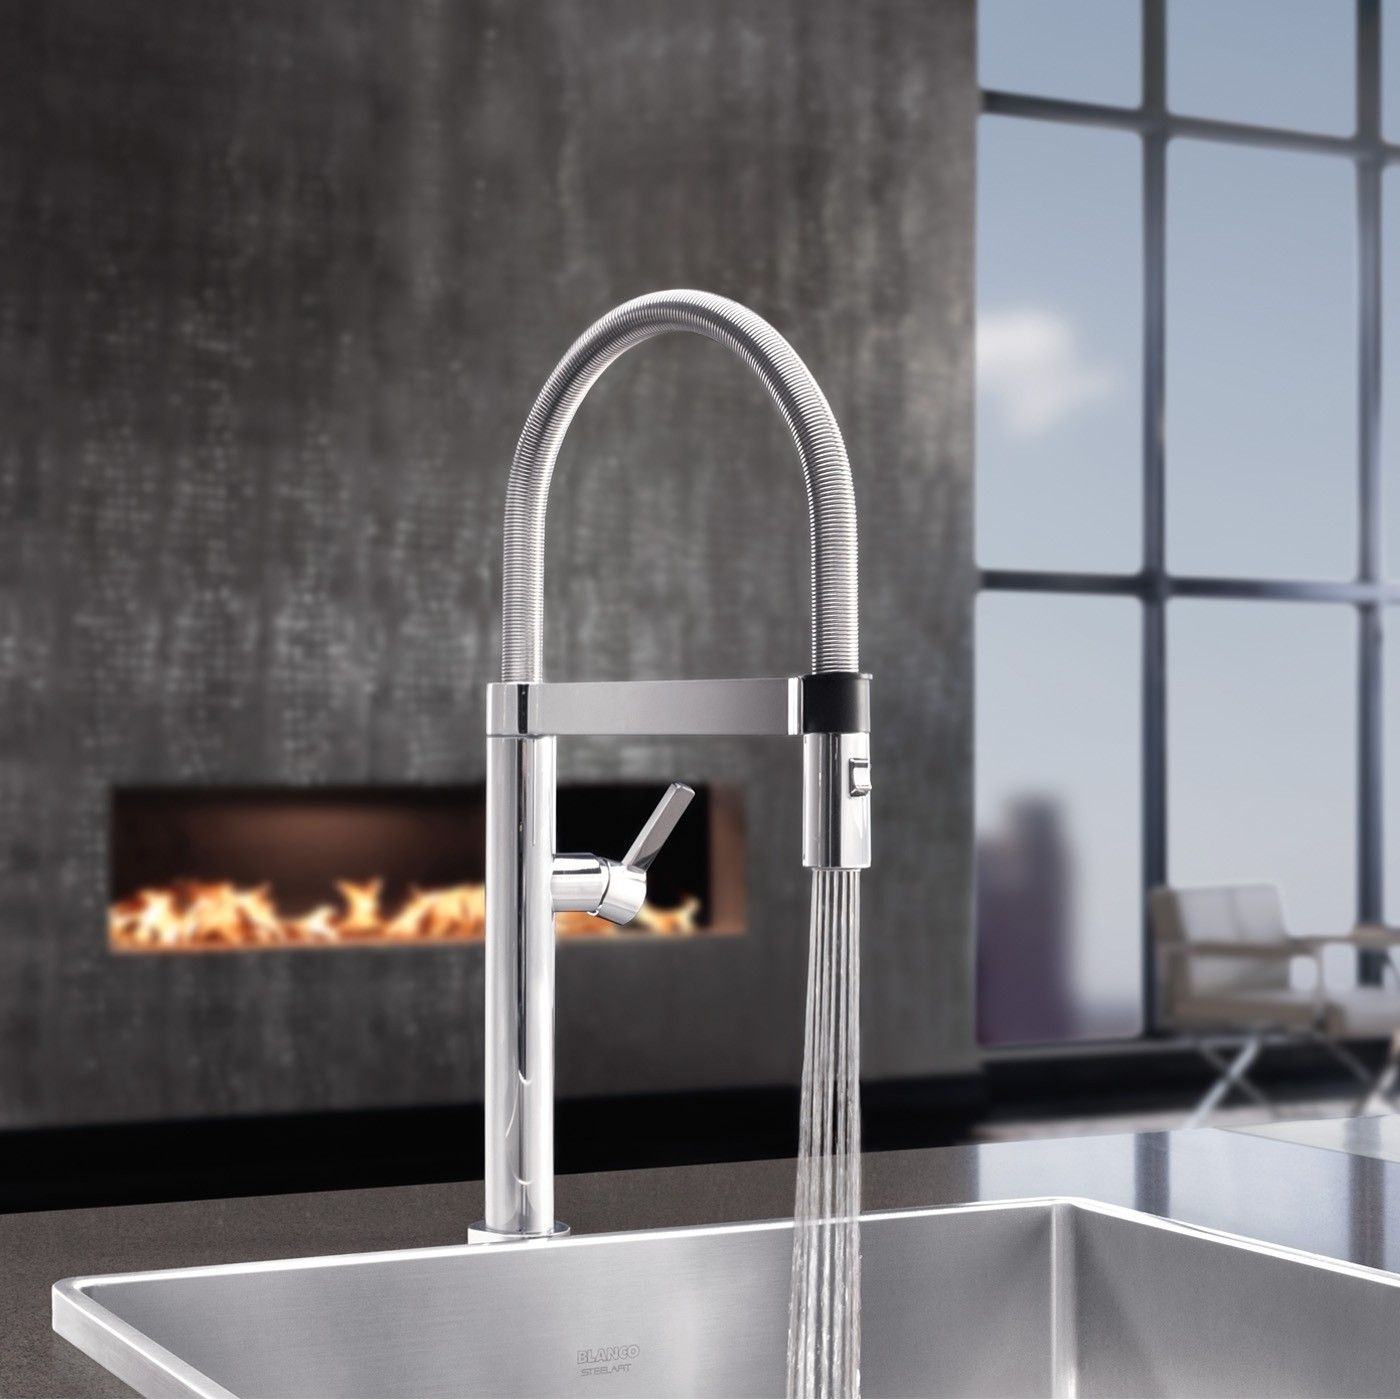 culina mini pull down kitchen faucet kitchen faucets faucet and culina mini pull down kitchen faucet